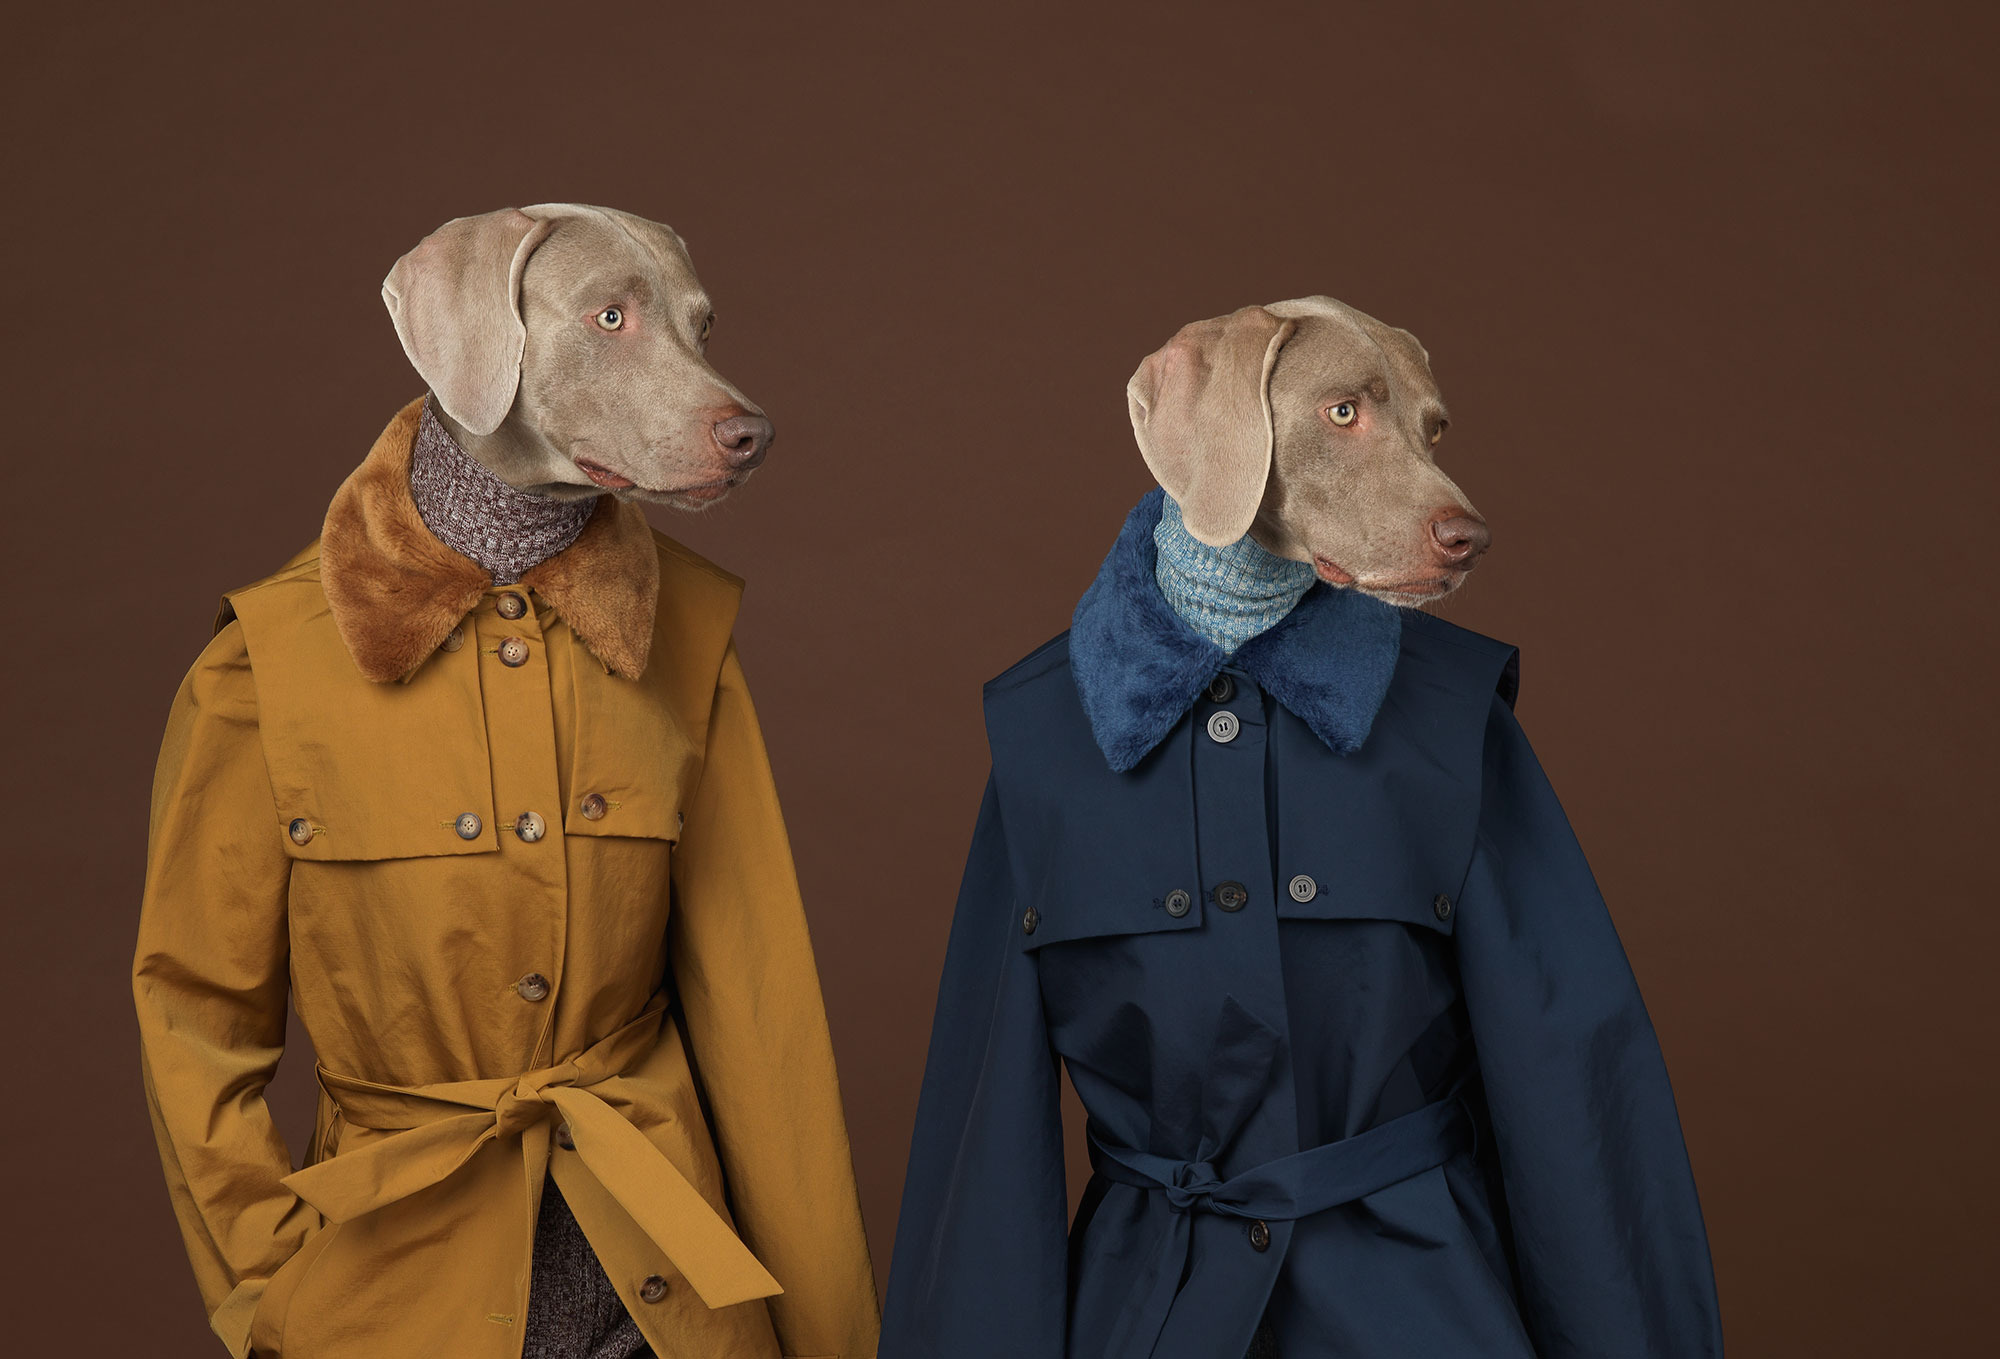 william-wegman-7.nocrop.w1800.h1330.2x